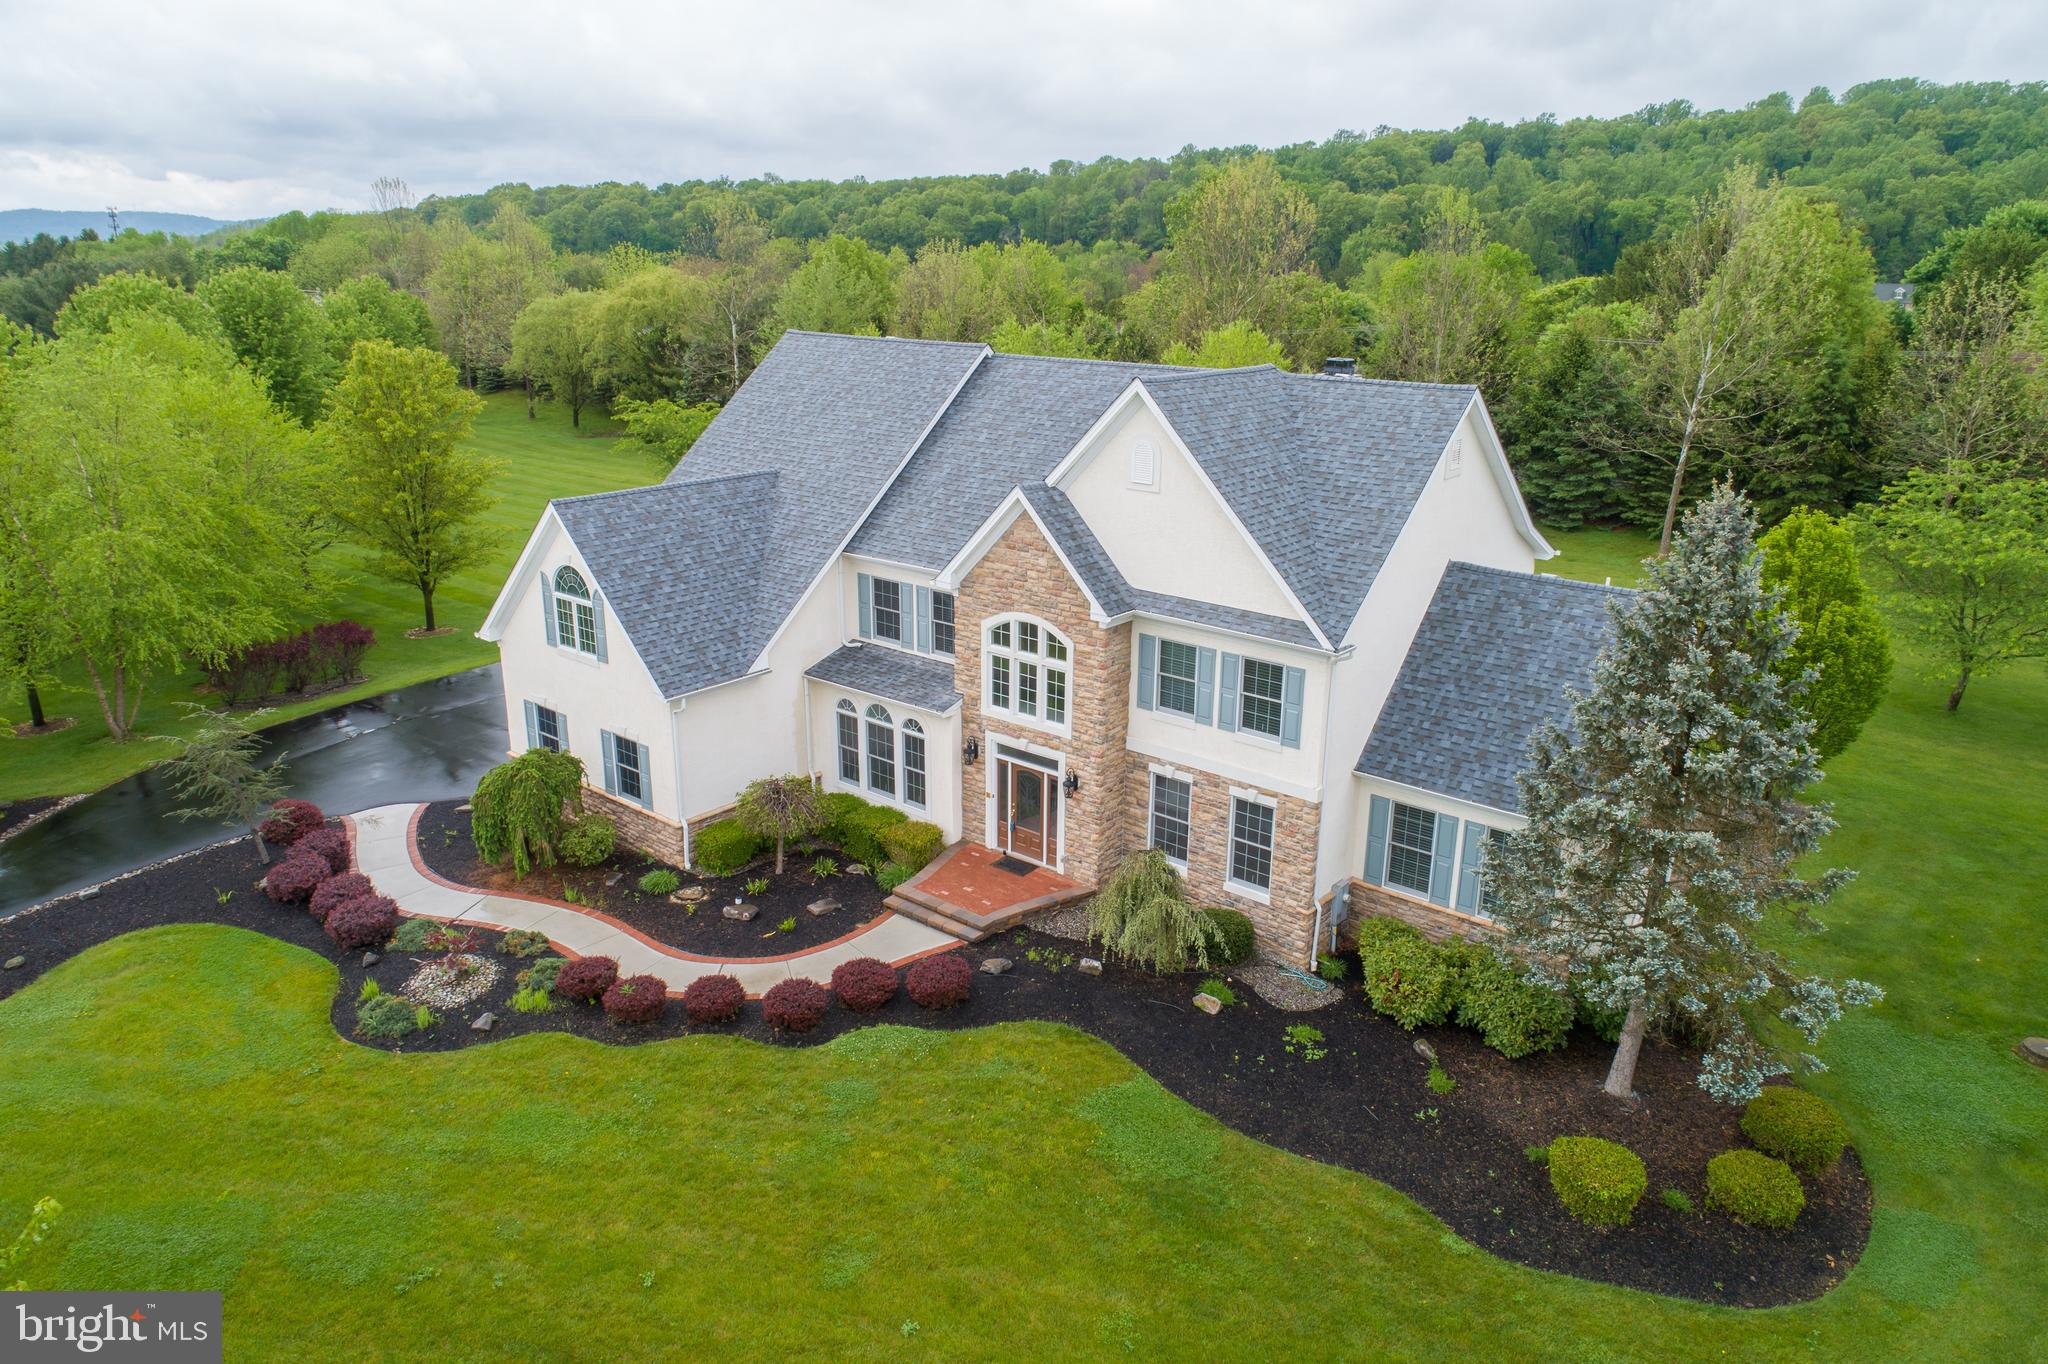 1571 Jakes Place, Hellertown, PA 18055